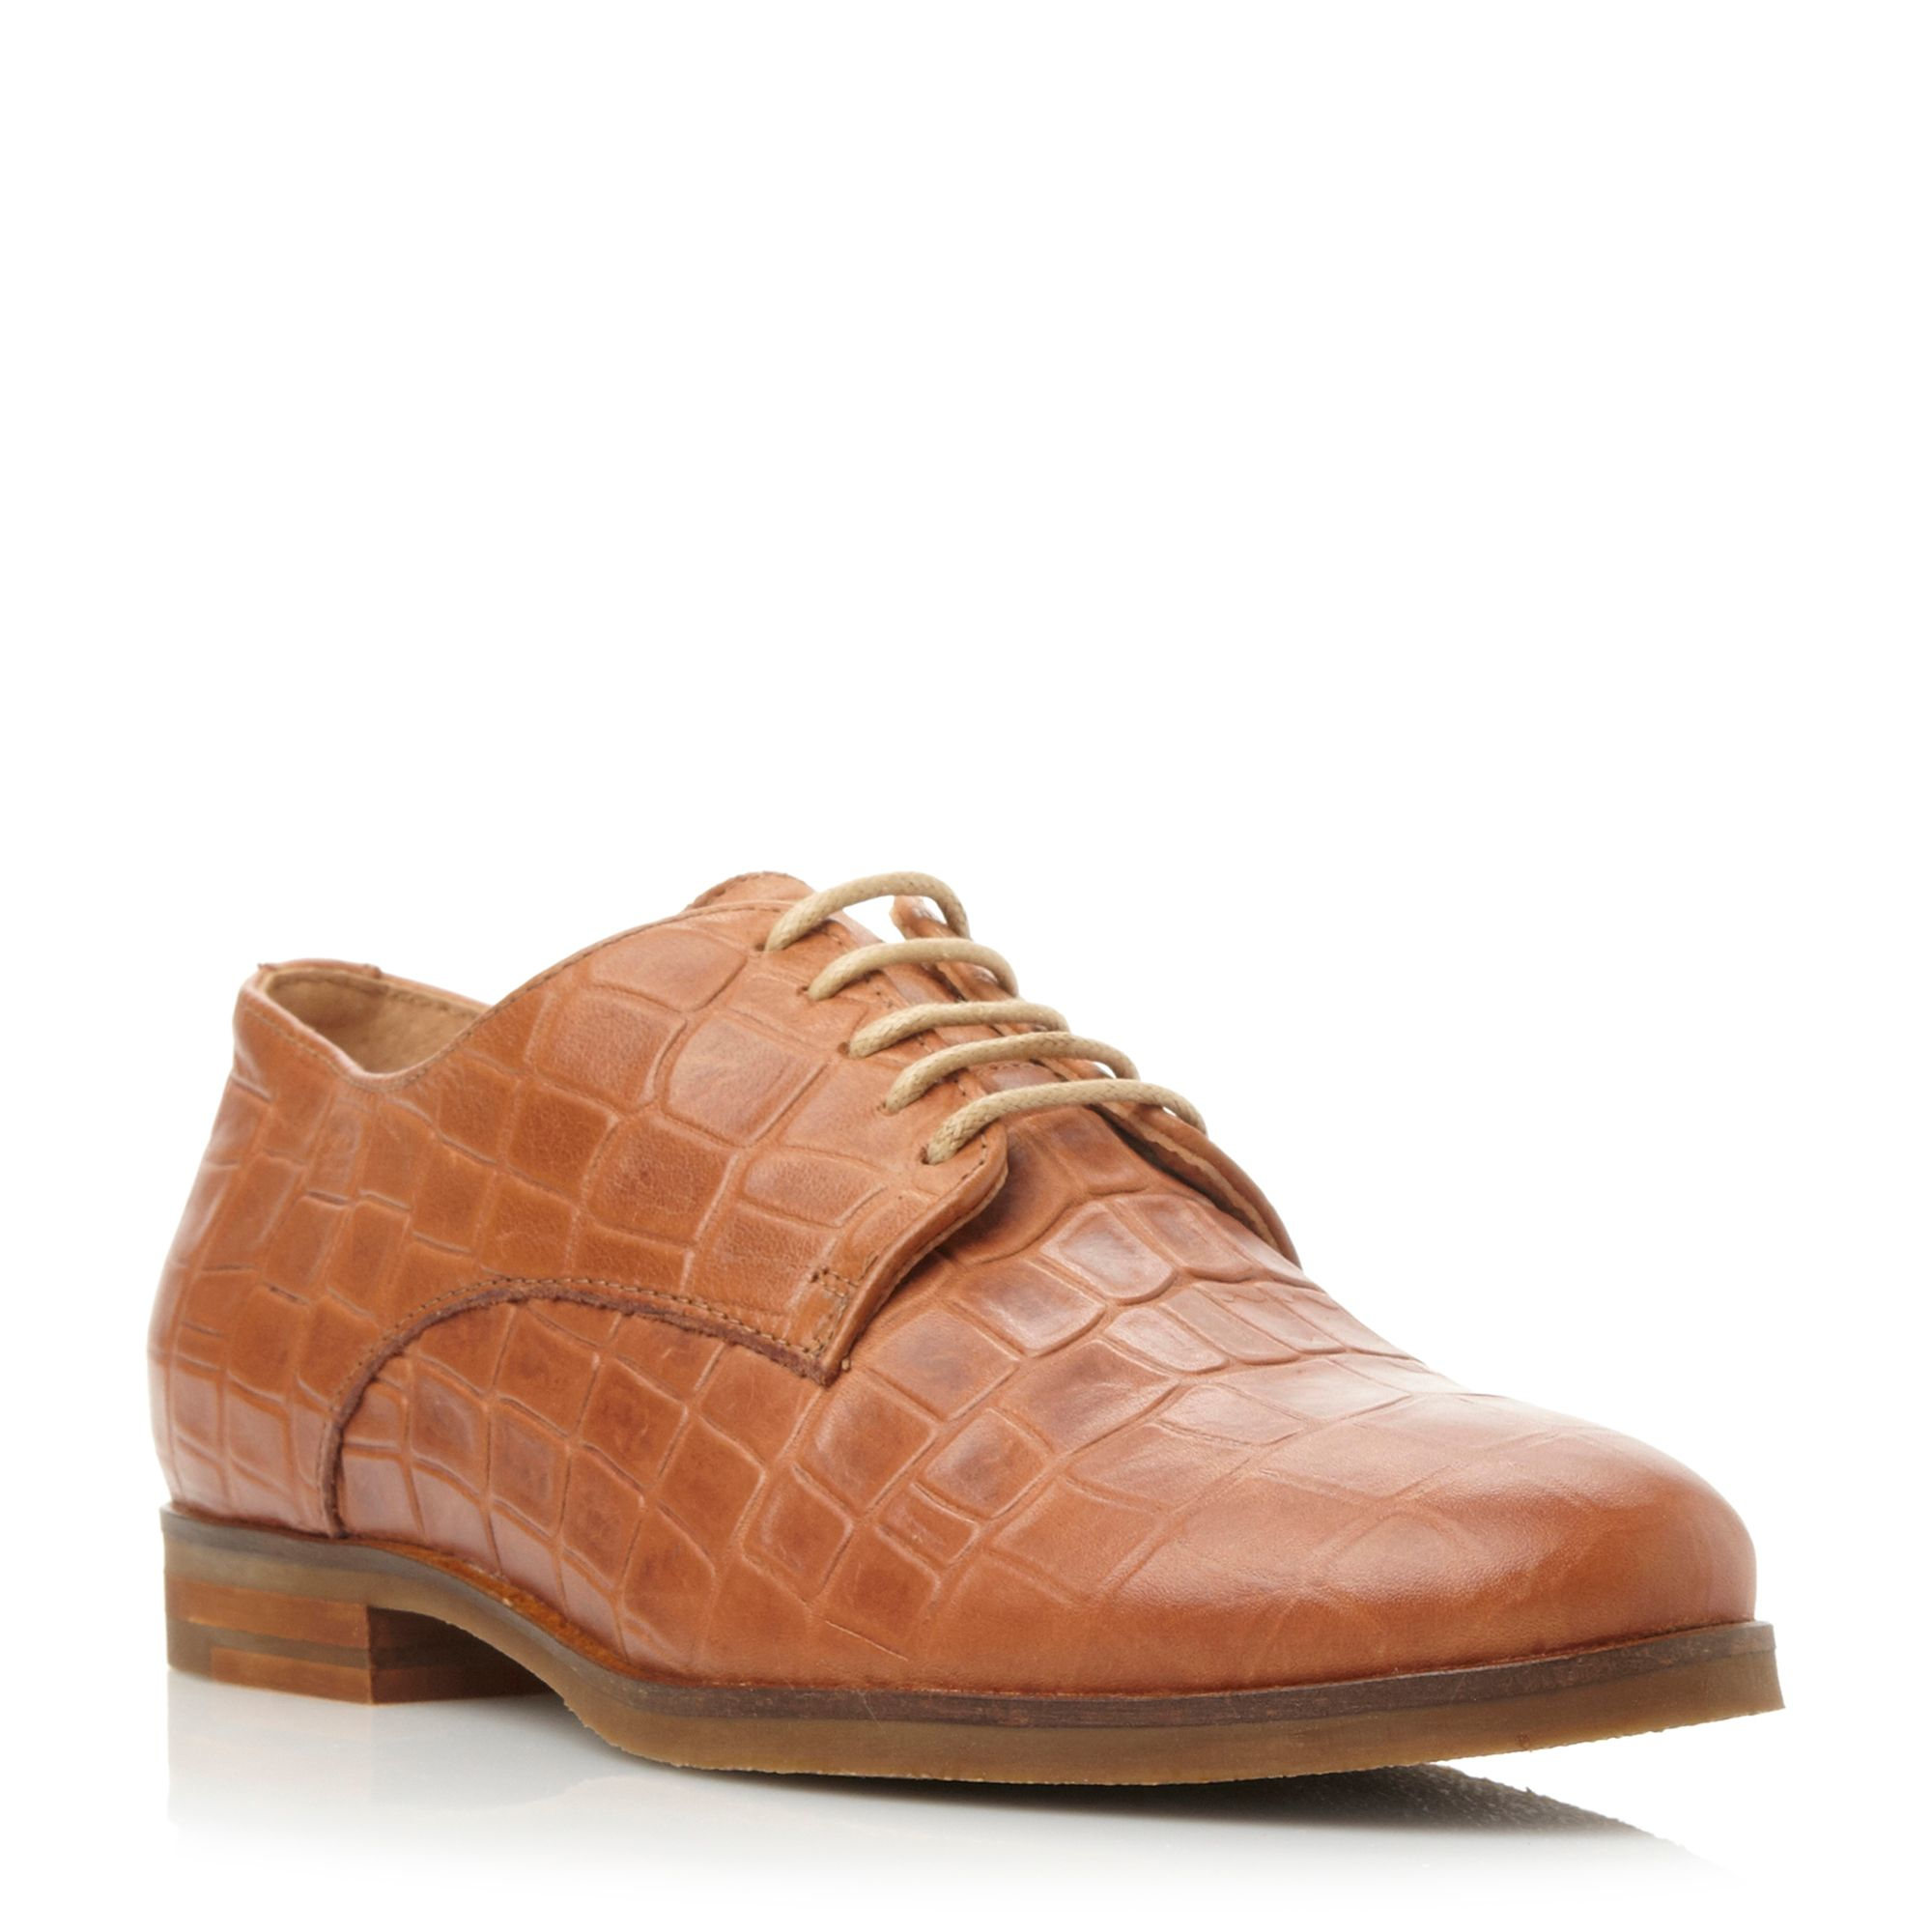 Dune Laboux Leather Round Toe Flat Lace Up Shoes In Brown   Lyst